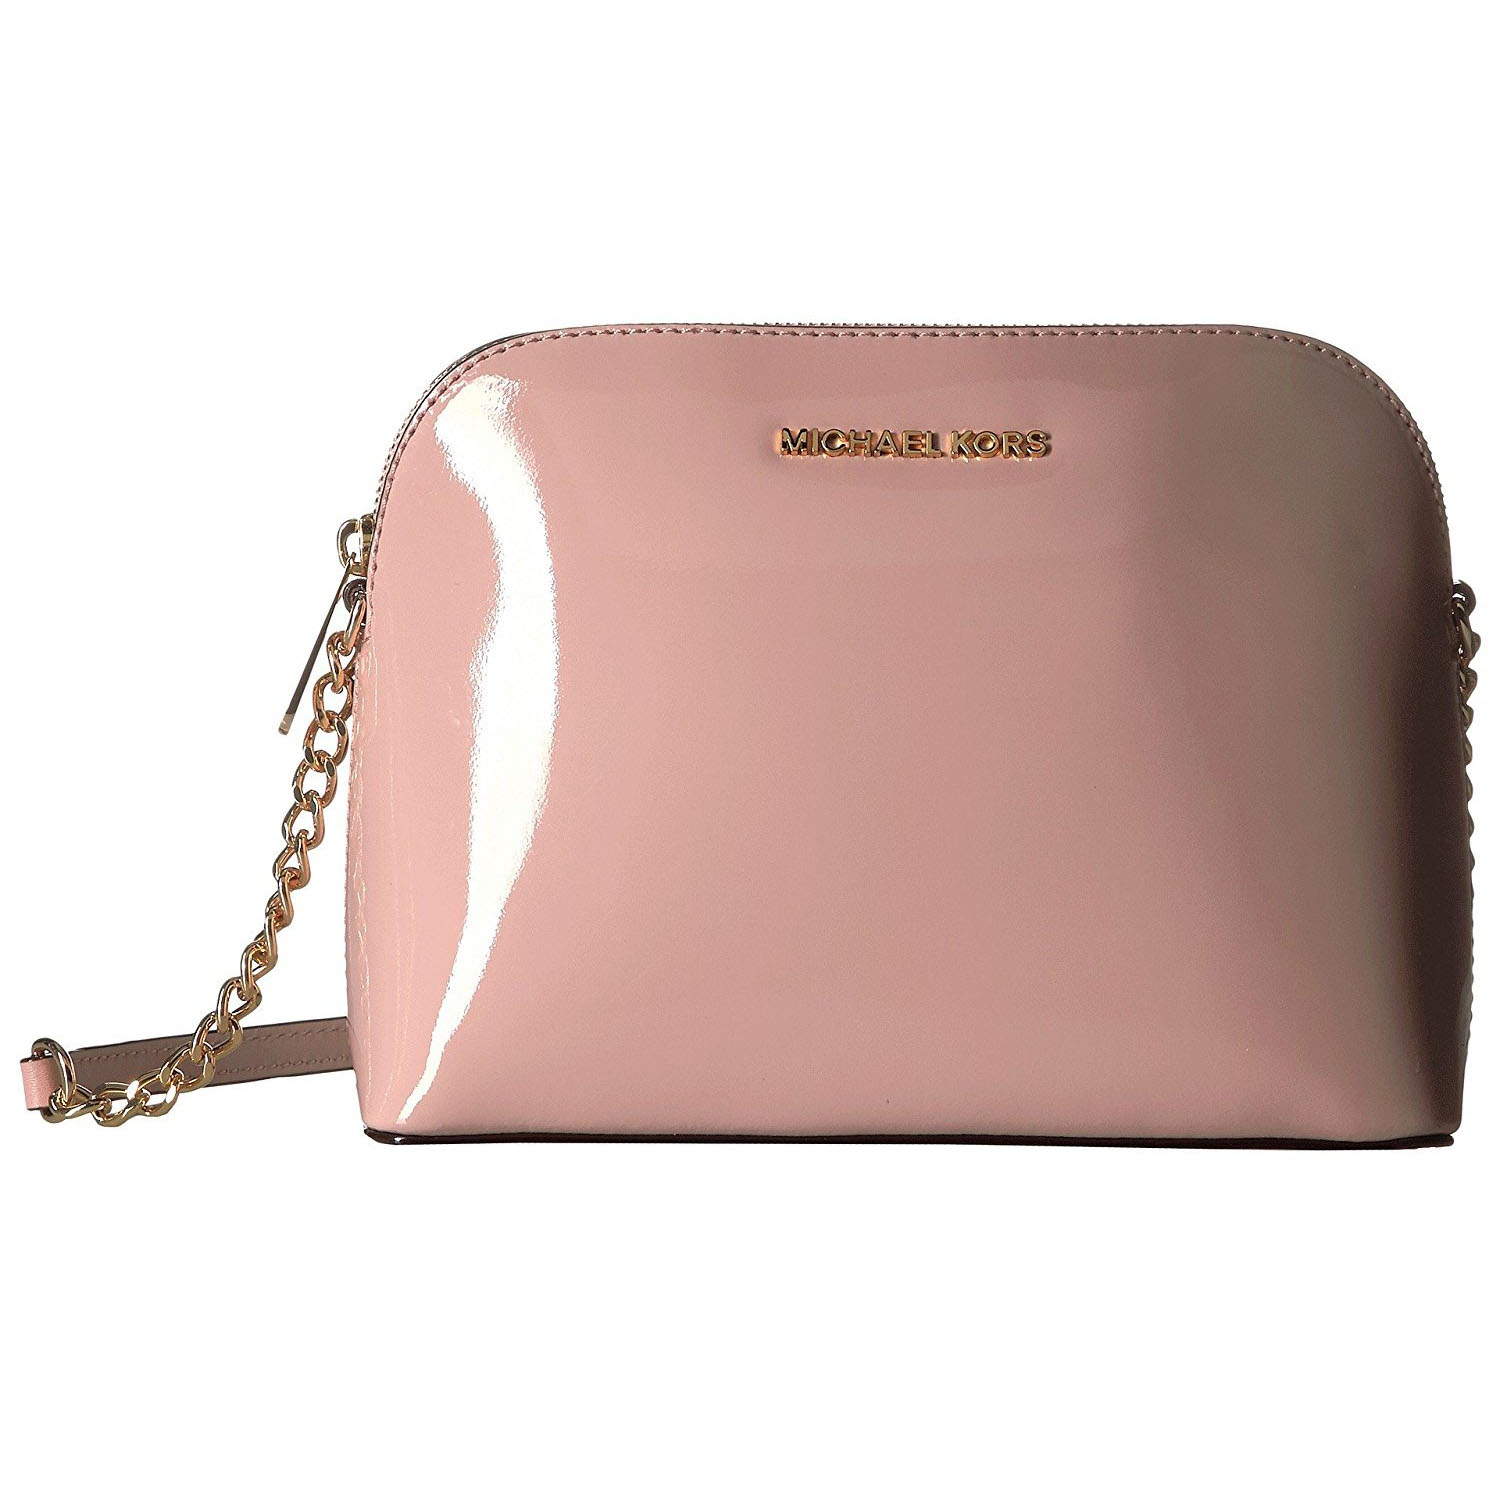 Michael Kors Cindy Large Dome Crossbody Bag Ballet Pink # 32T7GCPC3A